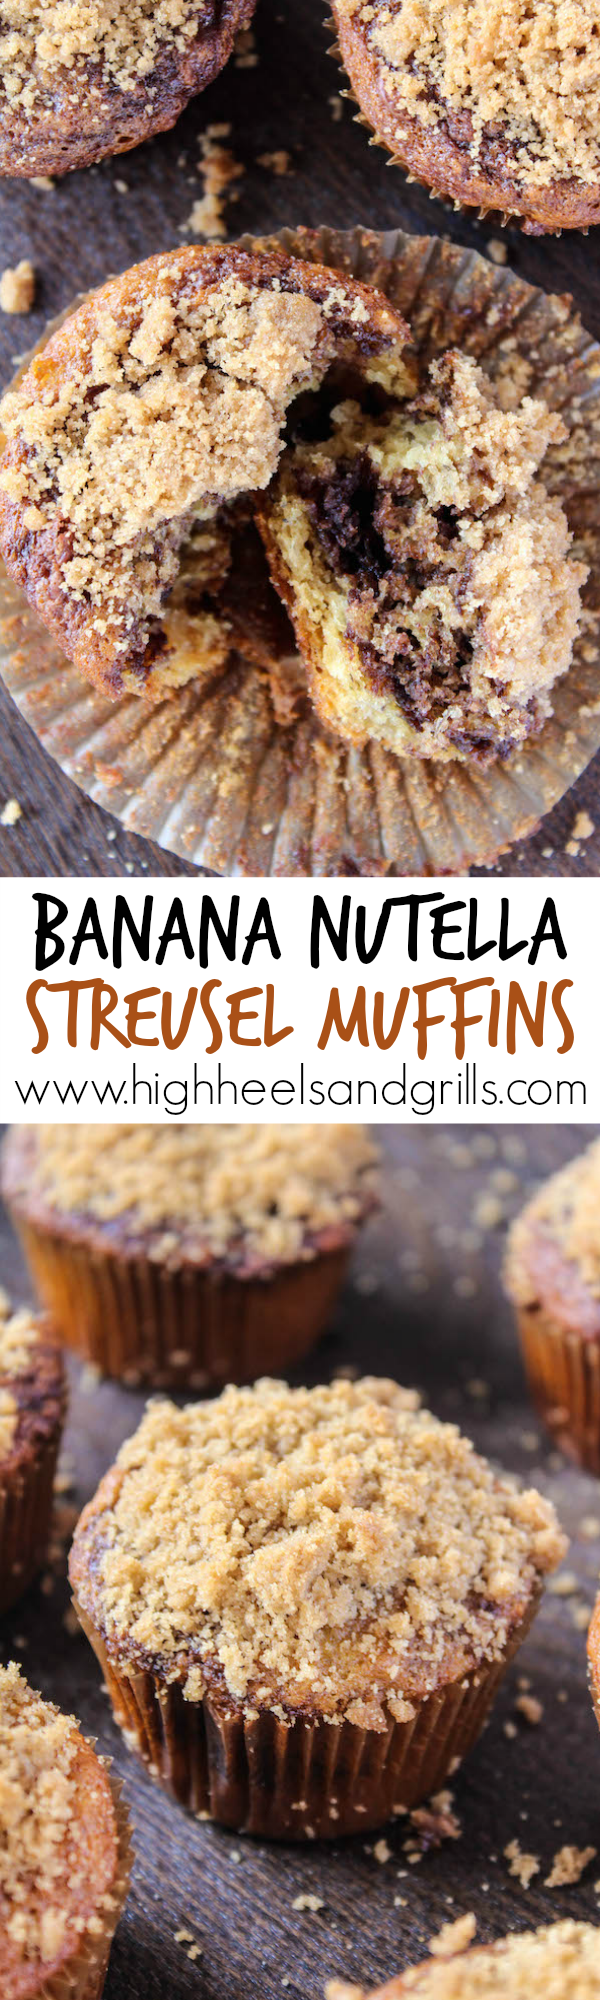 Banana Nutella Streusel Muffins Collage